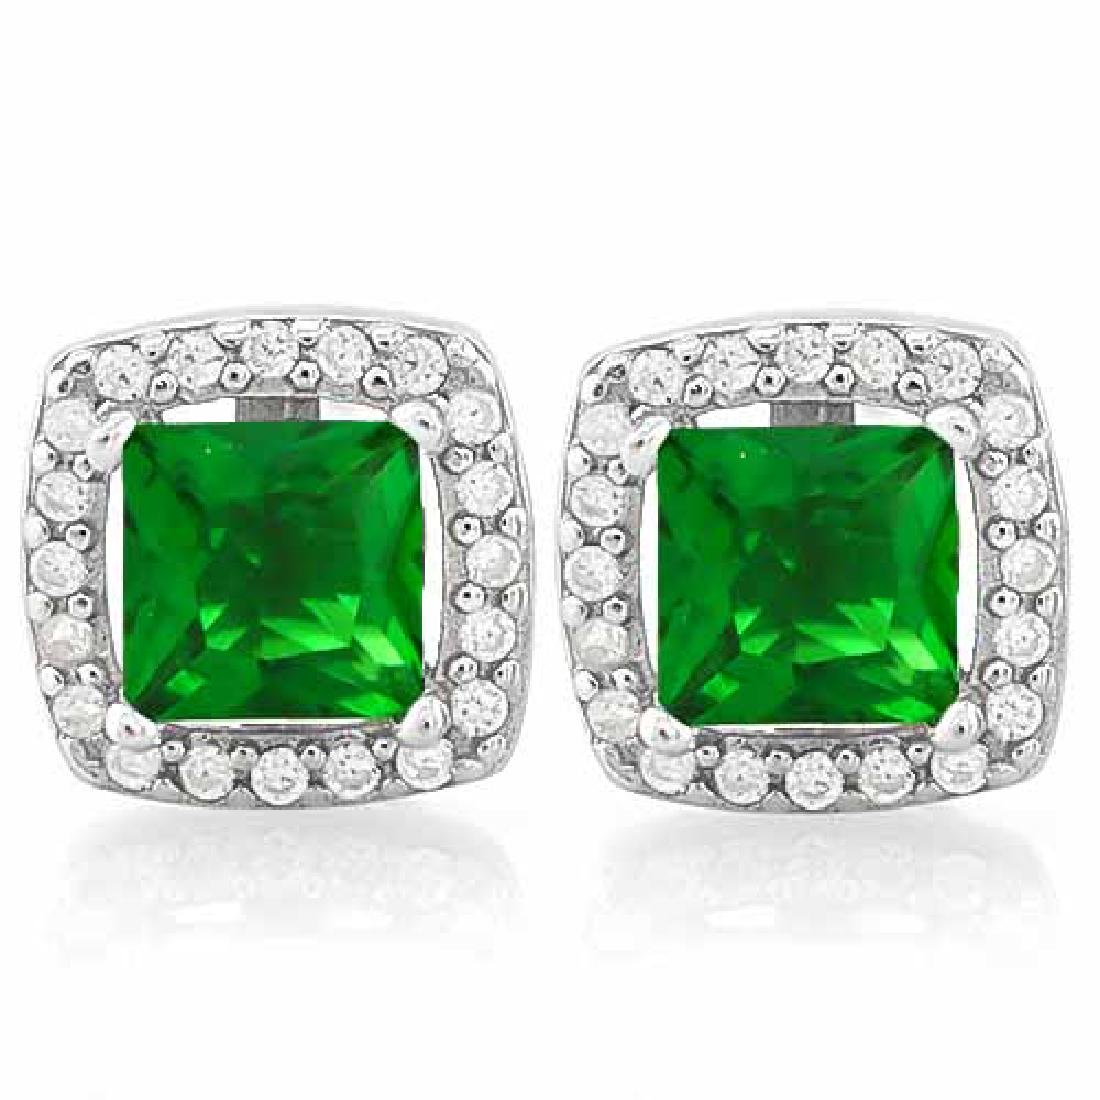 3 CARAT CREATED EMERALD & 4 CARAT (40 PCS) FLAWLESS CRE